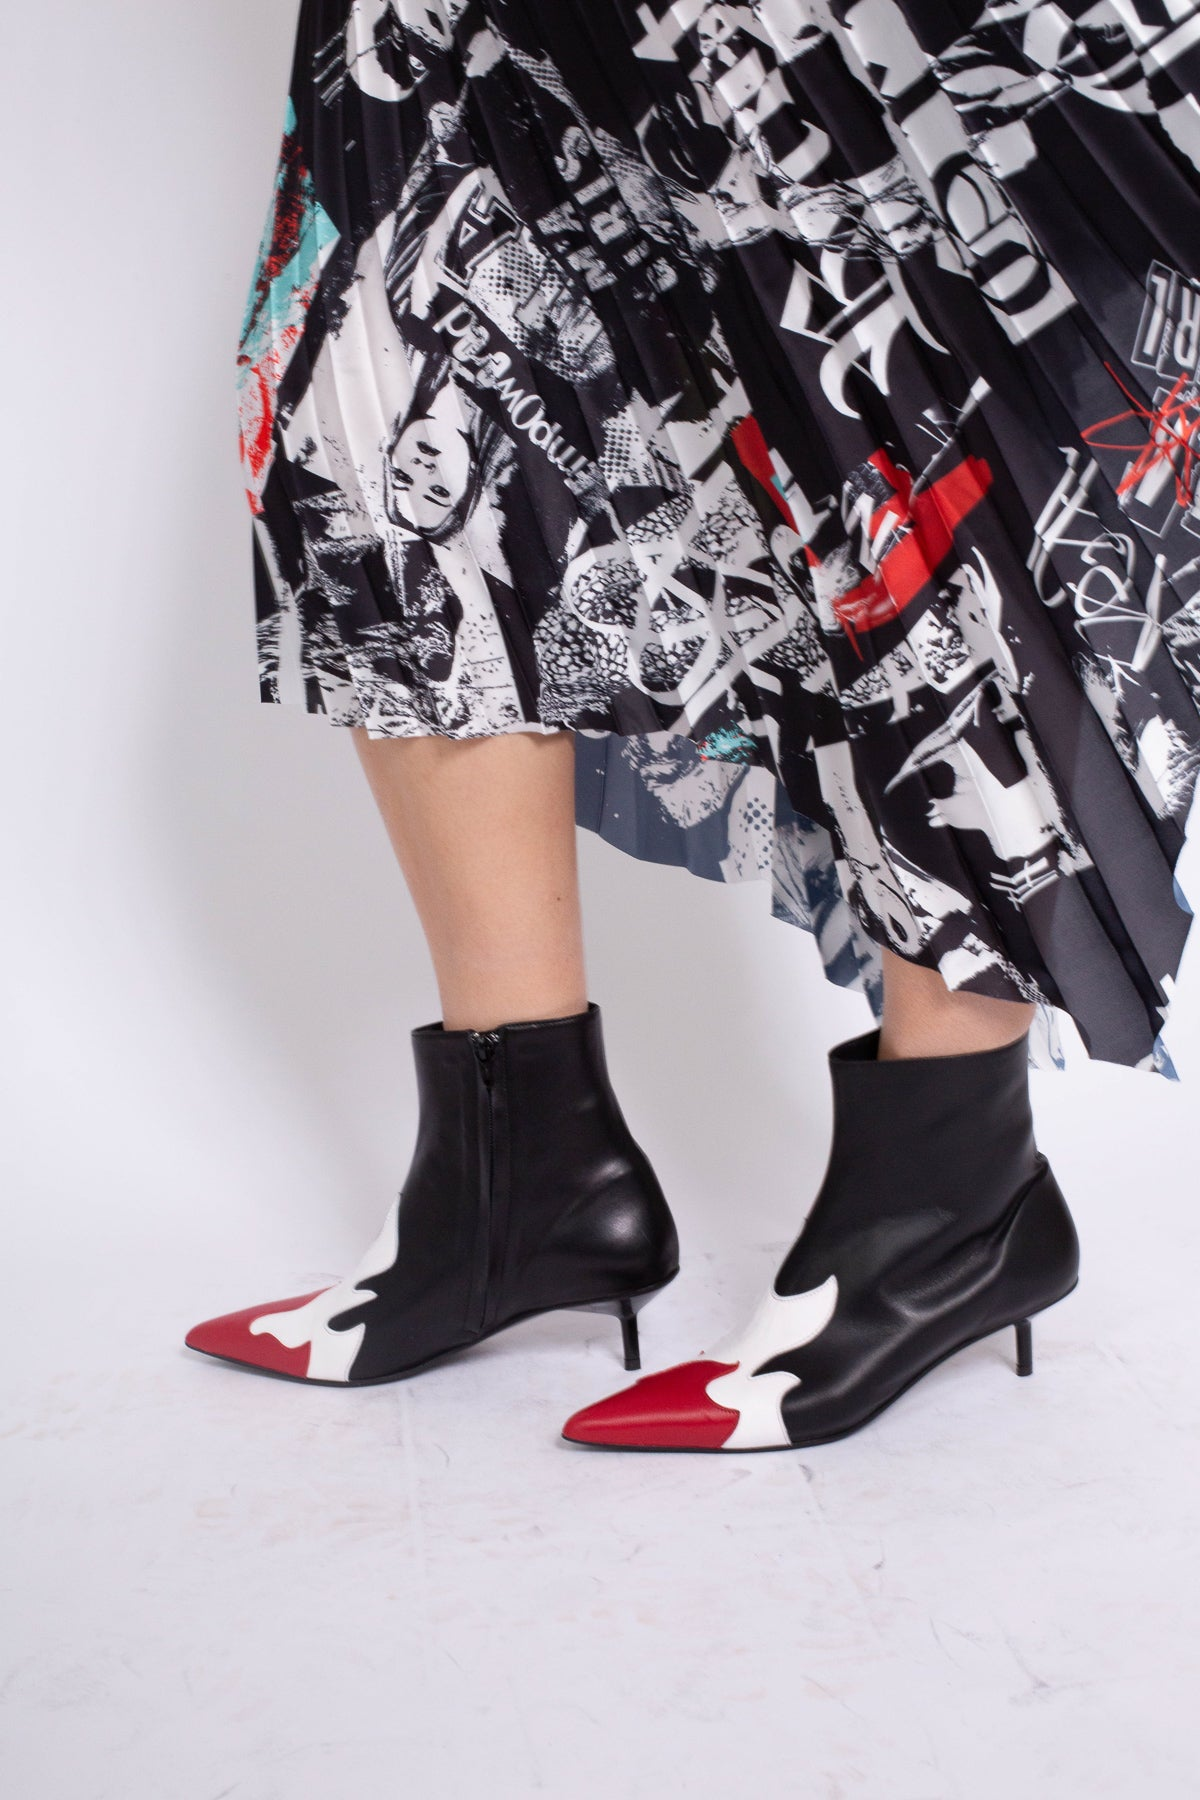 POINTY KITTEN HEEL FLAME BOOTS IN BLACK